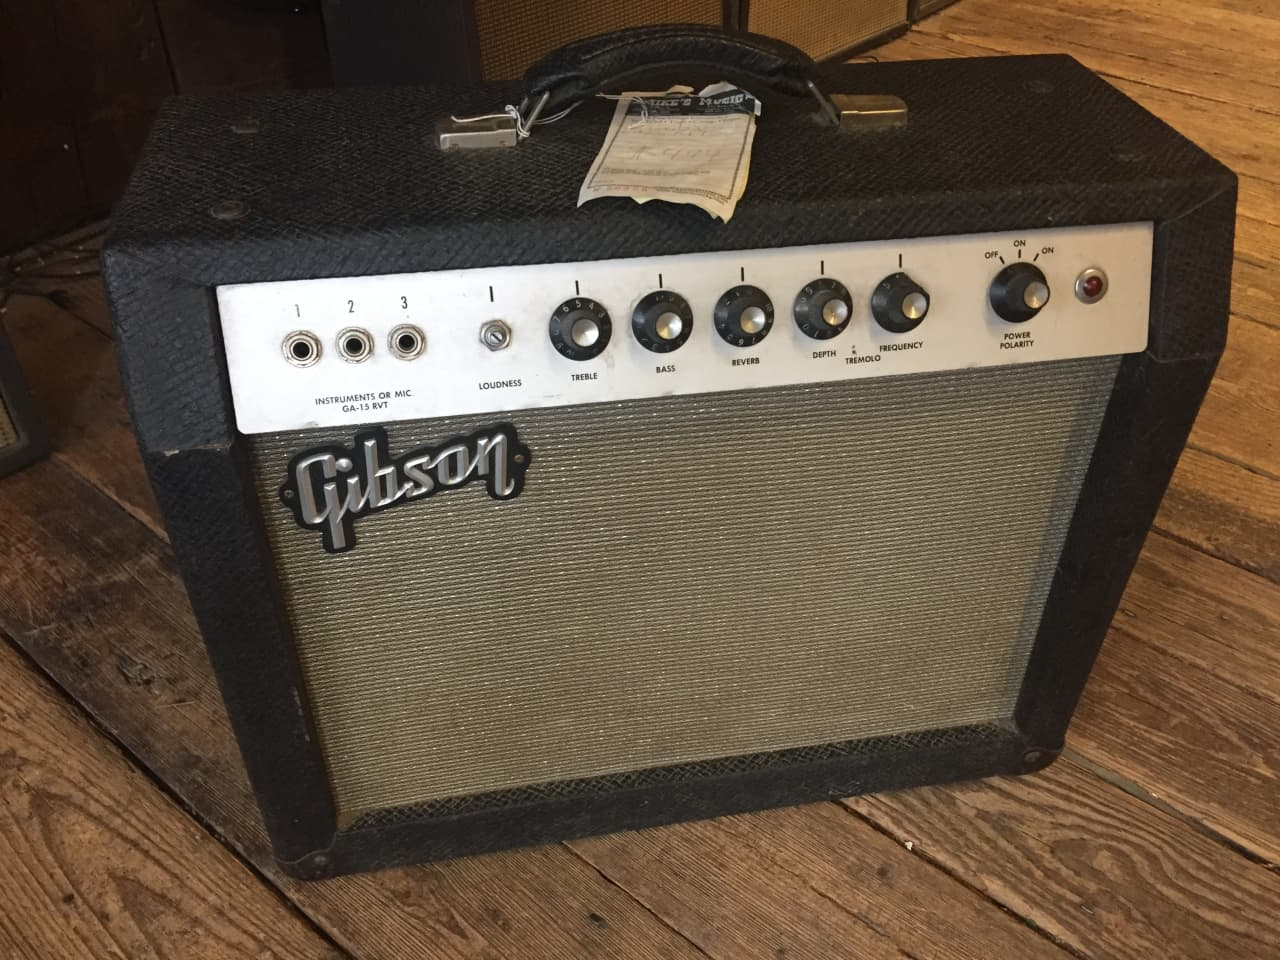 My Diy Guitar Amp Music Mike Footswitch For Epiphone Triggerman 60 2 Button Gibson Explorer Ga 15 Amplifier 1960s Mikes Reverb